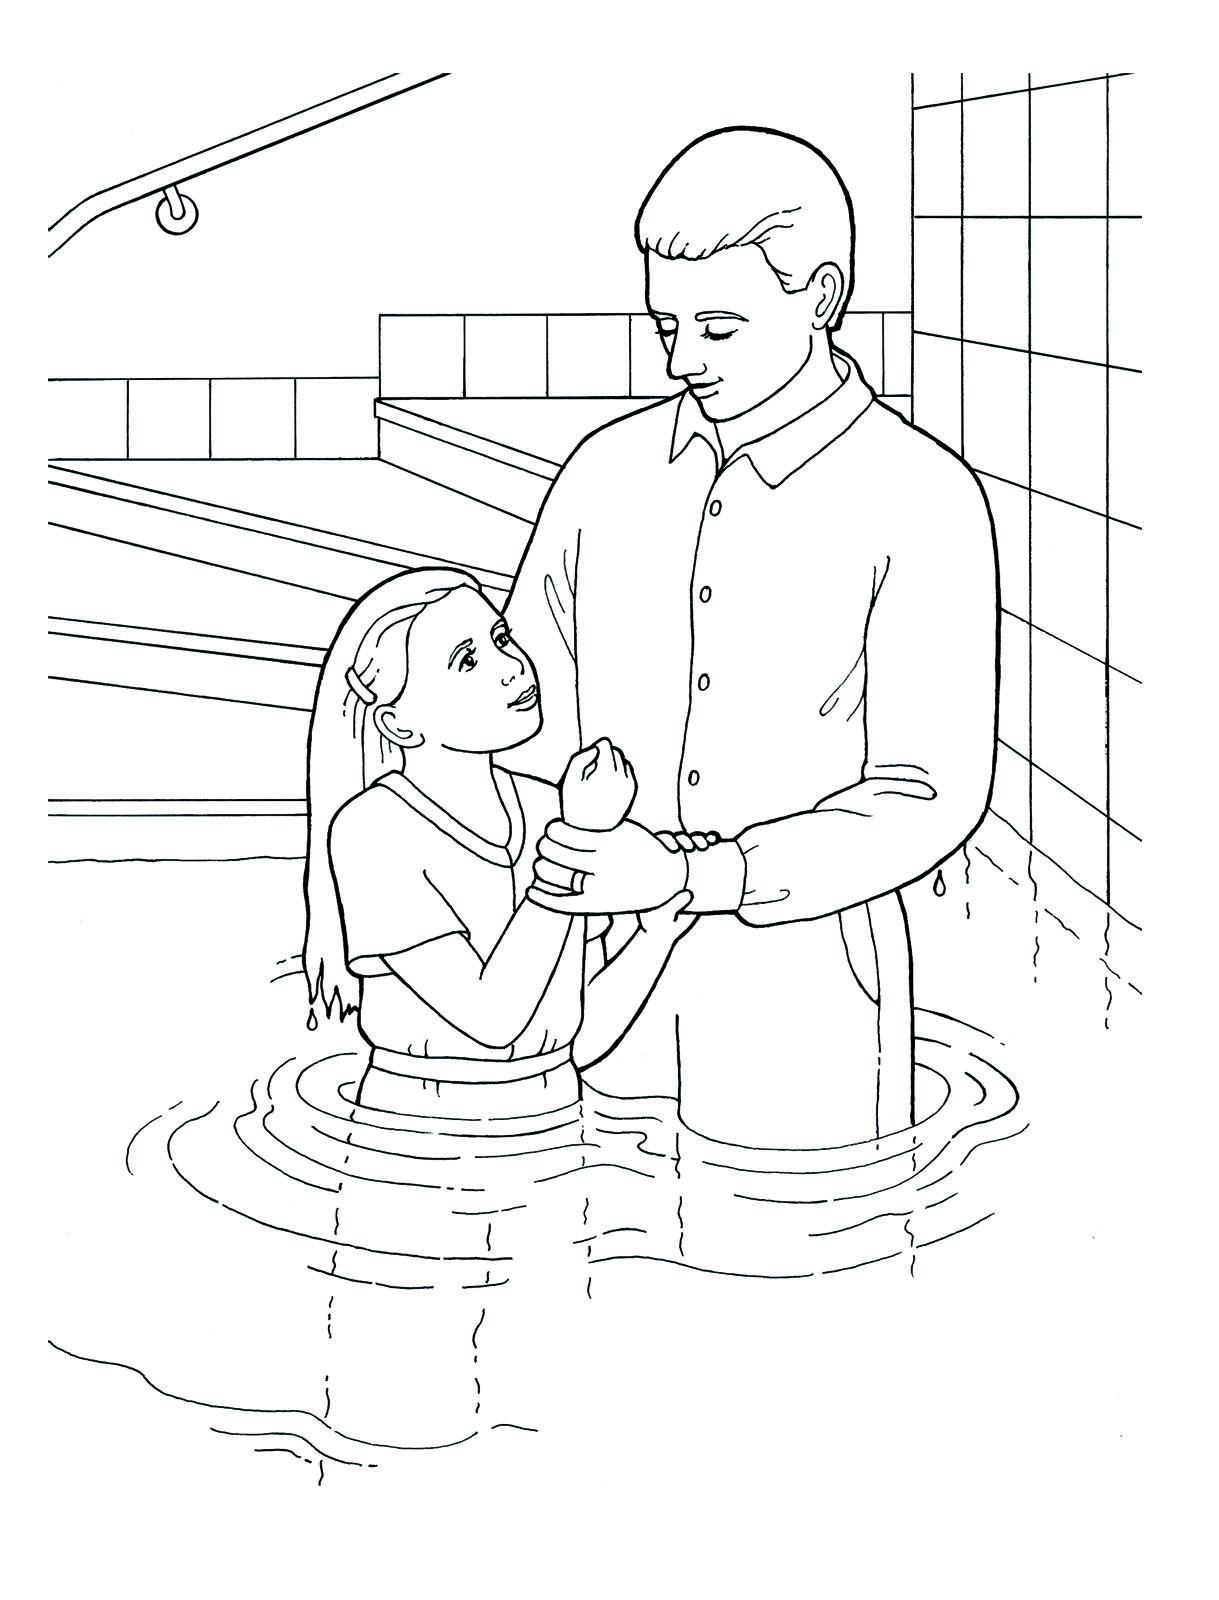 Baptism Day Primary Coloring Page Lds Ldsprimary Download Of Coloring Pages Thanksgiving Turkey Baptism Page Contemporary Style Download